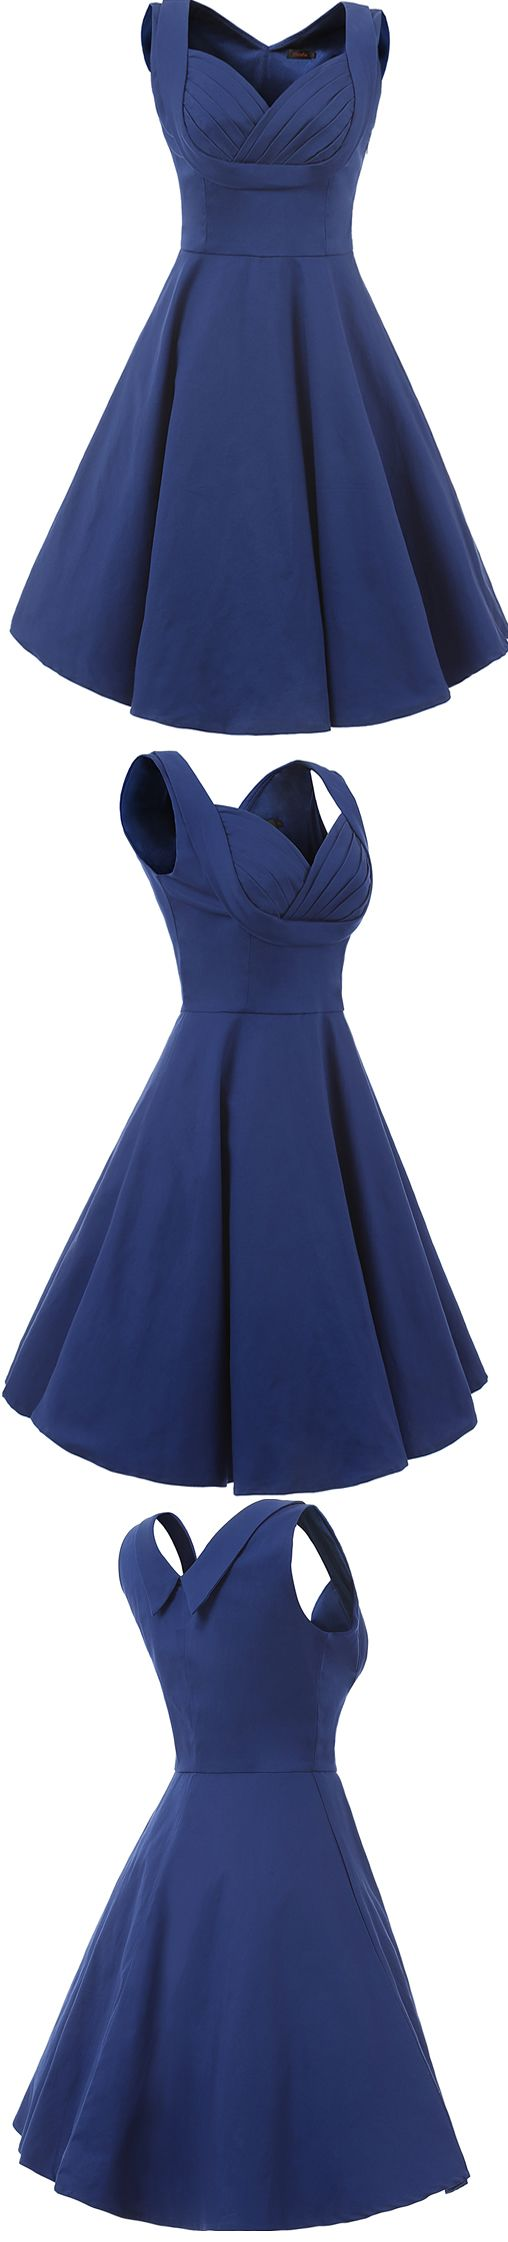 Vianla Women's 1950s V Neck Vintage Cut Out Casual Party Cocktail Dresses, 50S dress #Vintage dresses 1950s dress